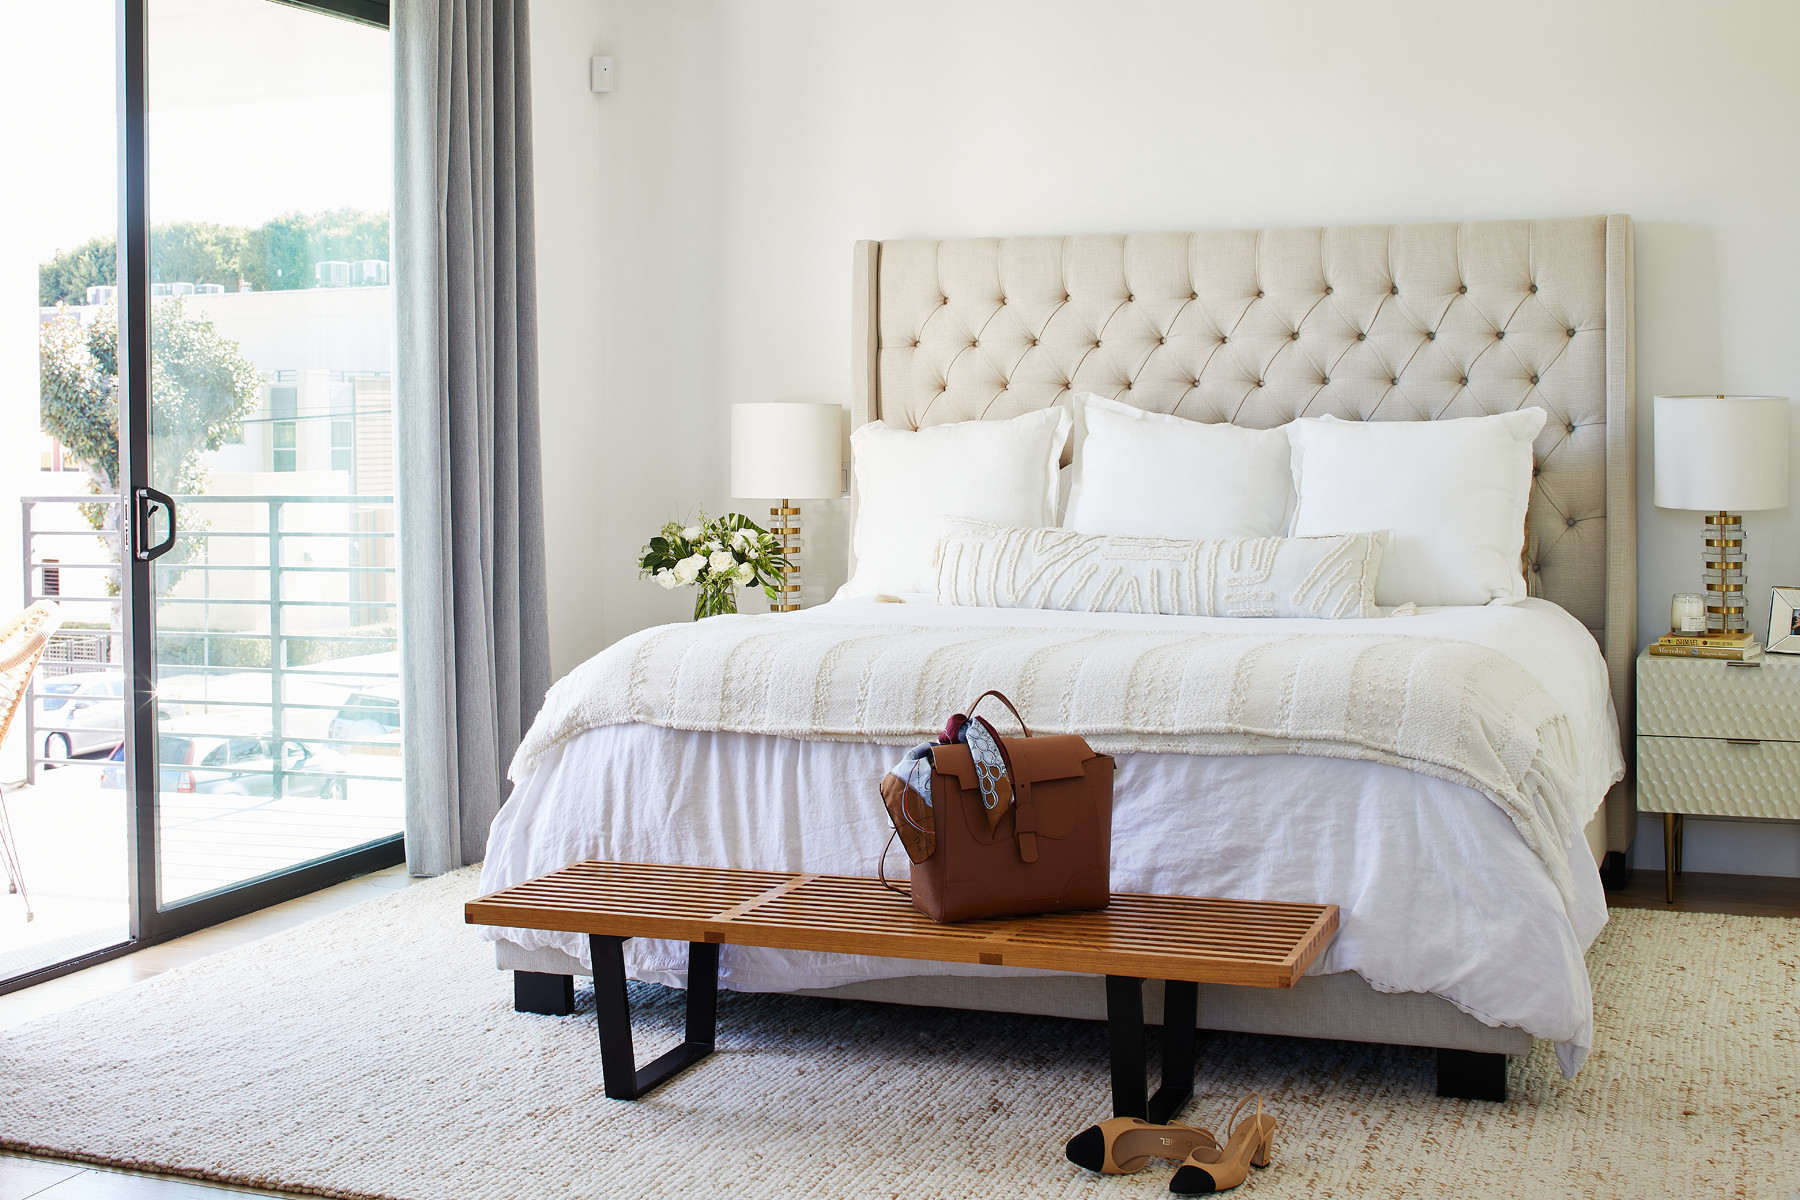 Neutral tones are layered with textured pieces to add dimension and visual appeal.Restoration Hardware Chesterfield Fabric Panel Headboard |Restoration Hardware Linen Duvet Cover |NelsonPlatform Bench |Scenario Banded Glass Table Lamp |Target Euro Pillow |West Elm Mini Pebble Wool Jute Rug.